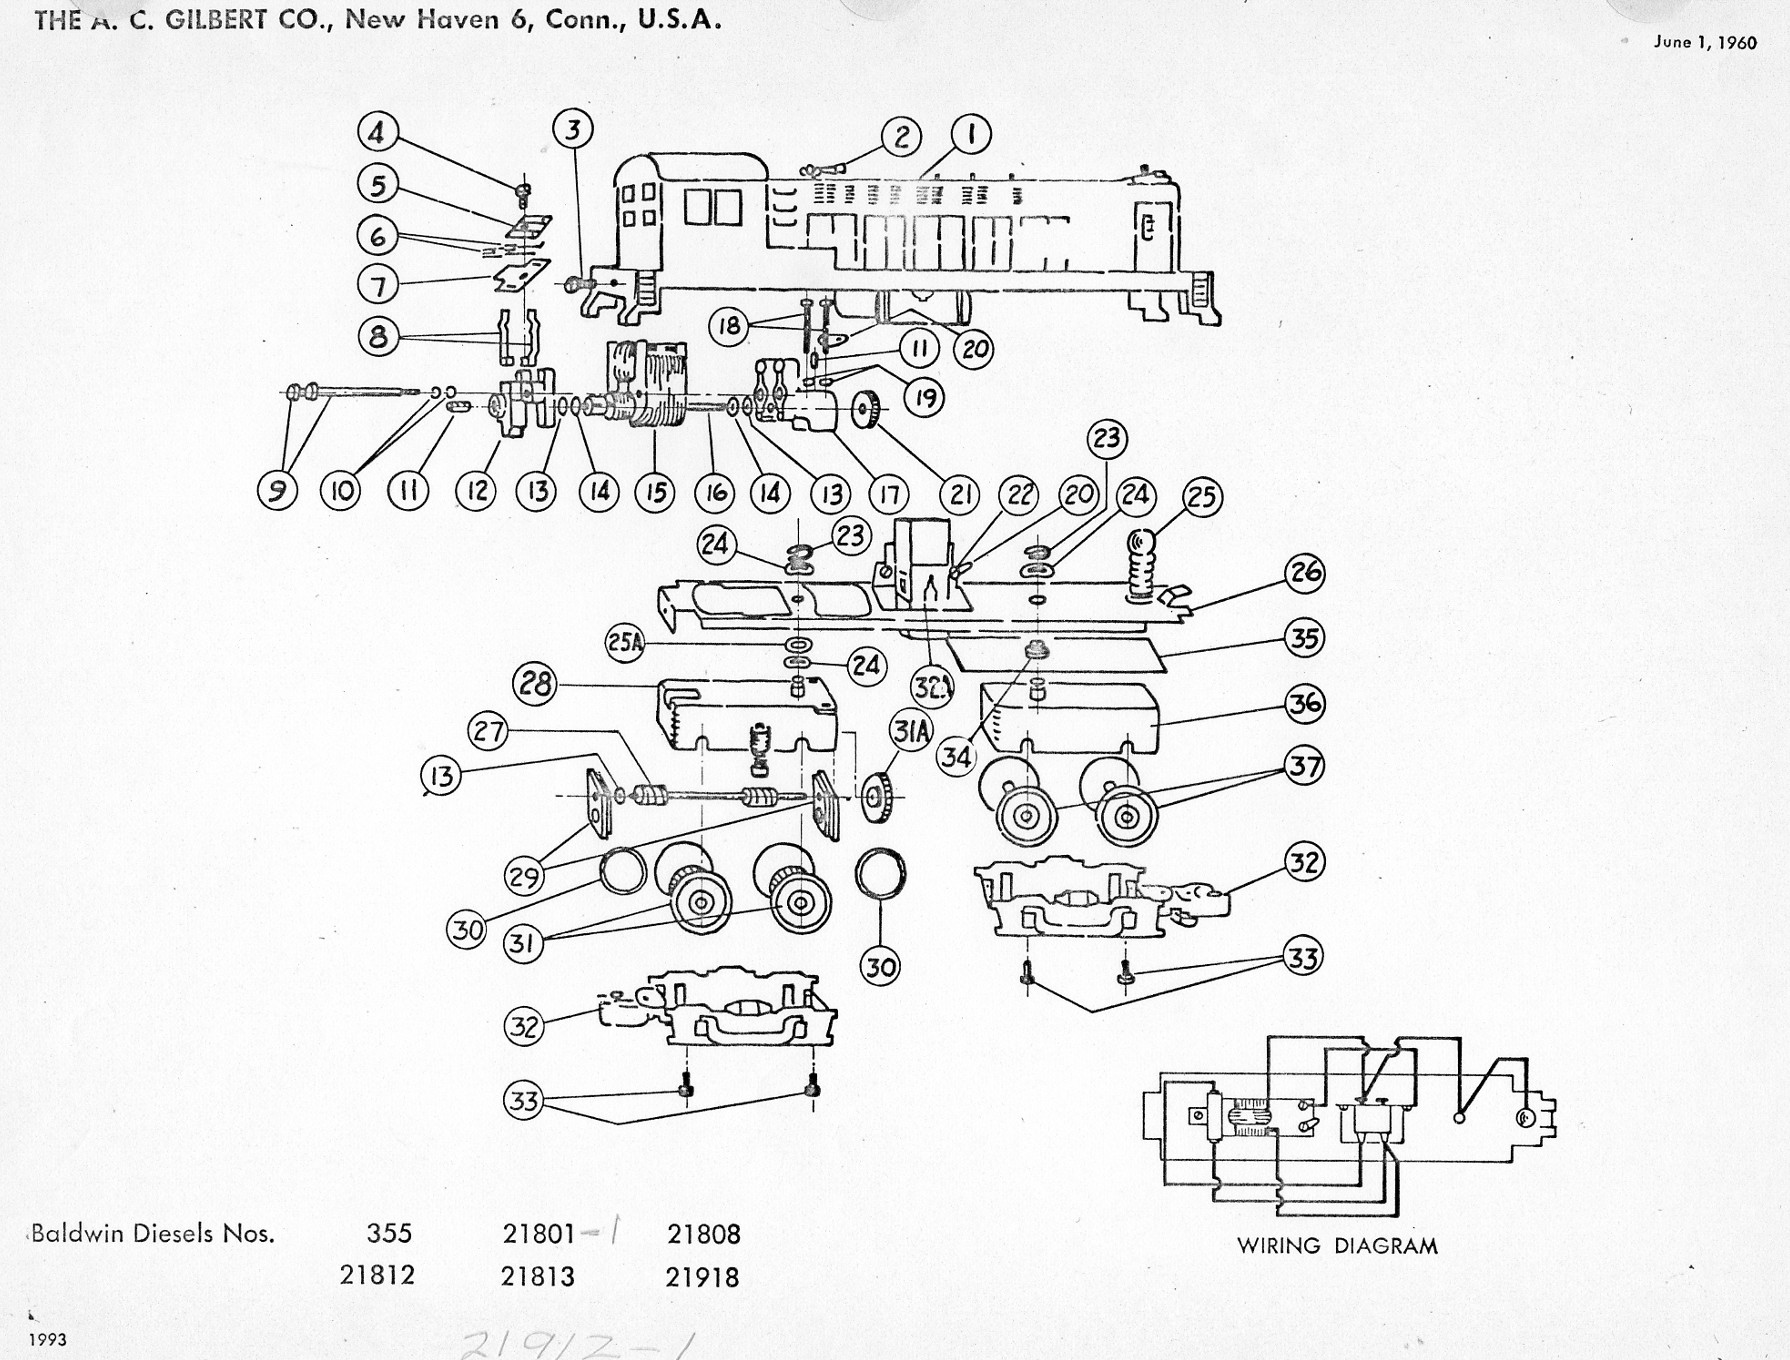 lionel motor wiring diagram sel with American Flyer Engine Wiring Diagrams on Bachmann Transformer Wiring Diagram further 3 Wire Wiring Diagram Bodine Gear Motor also Lionel Engine Motor Wiring Diagram besides 3 Wire Wiring Diagram Bodine Gear Motor as well Lionel Switch Wiring Diagram.